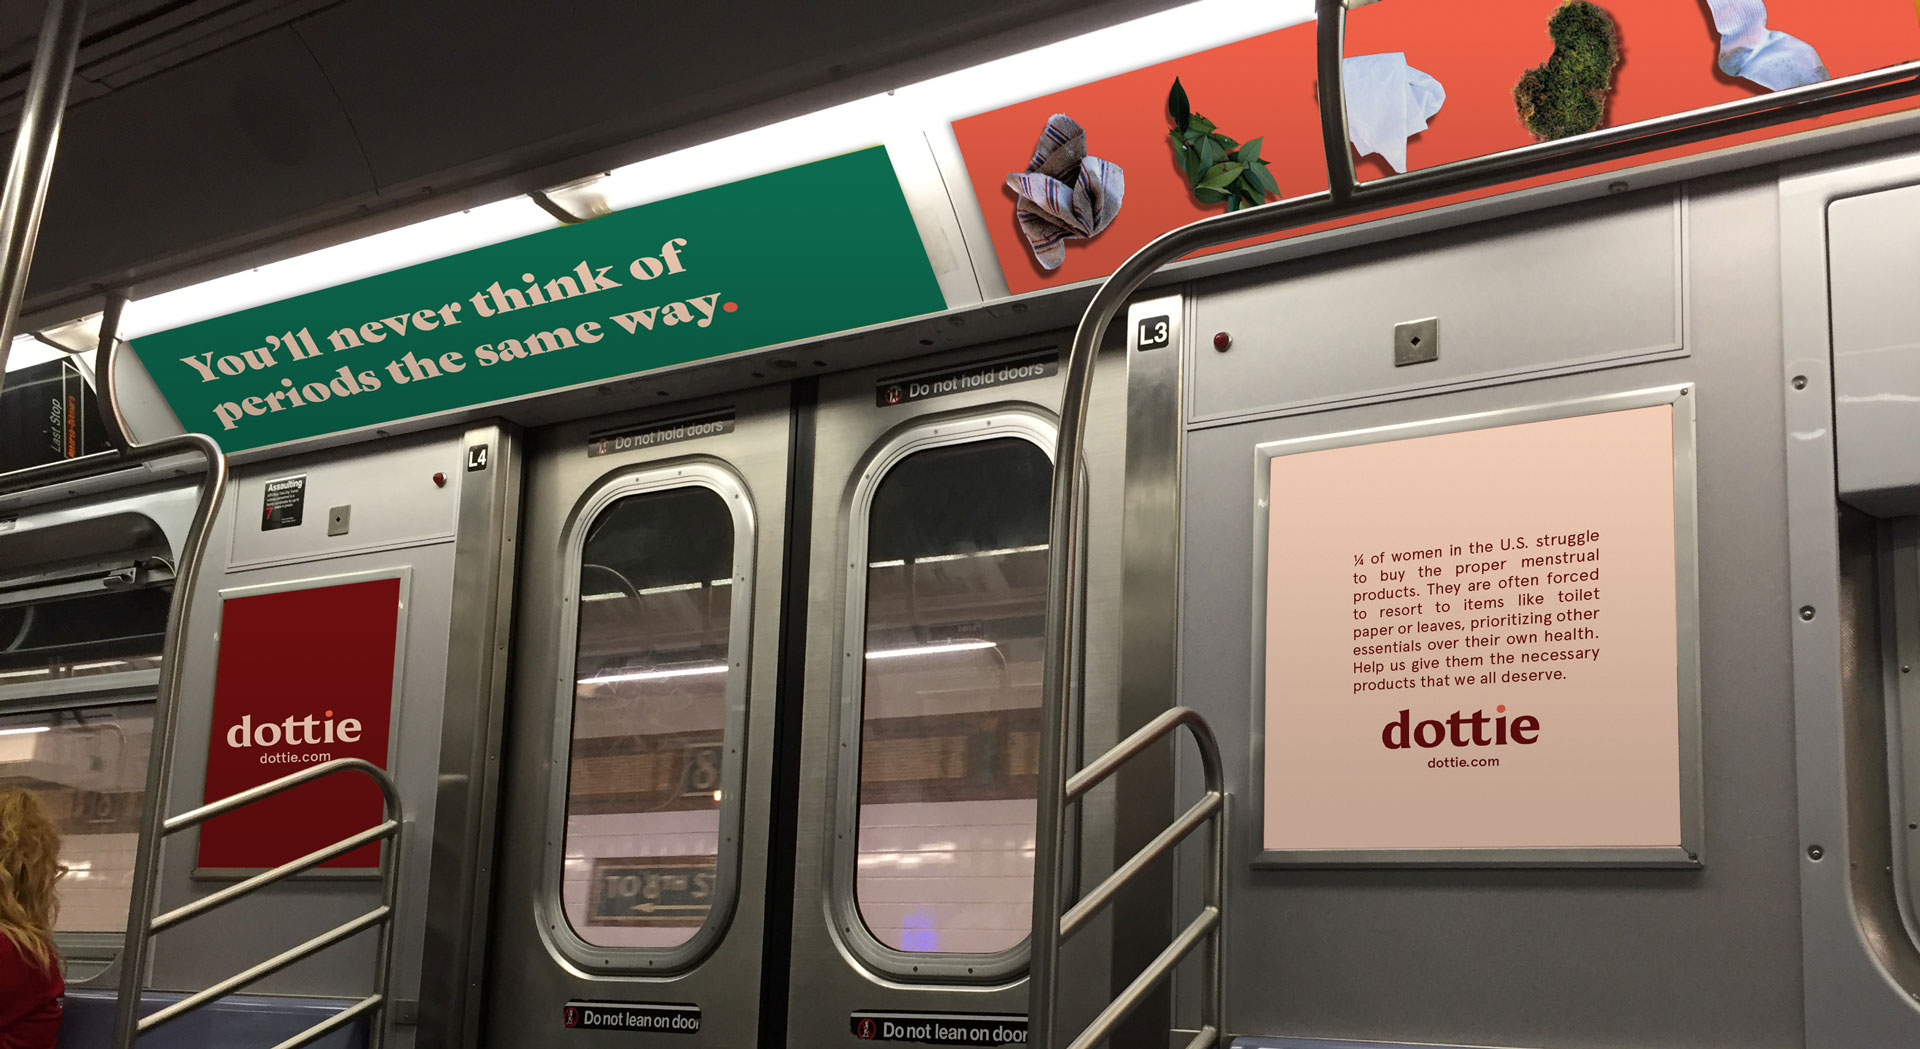 dottie-subway-ads.jpg